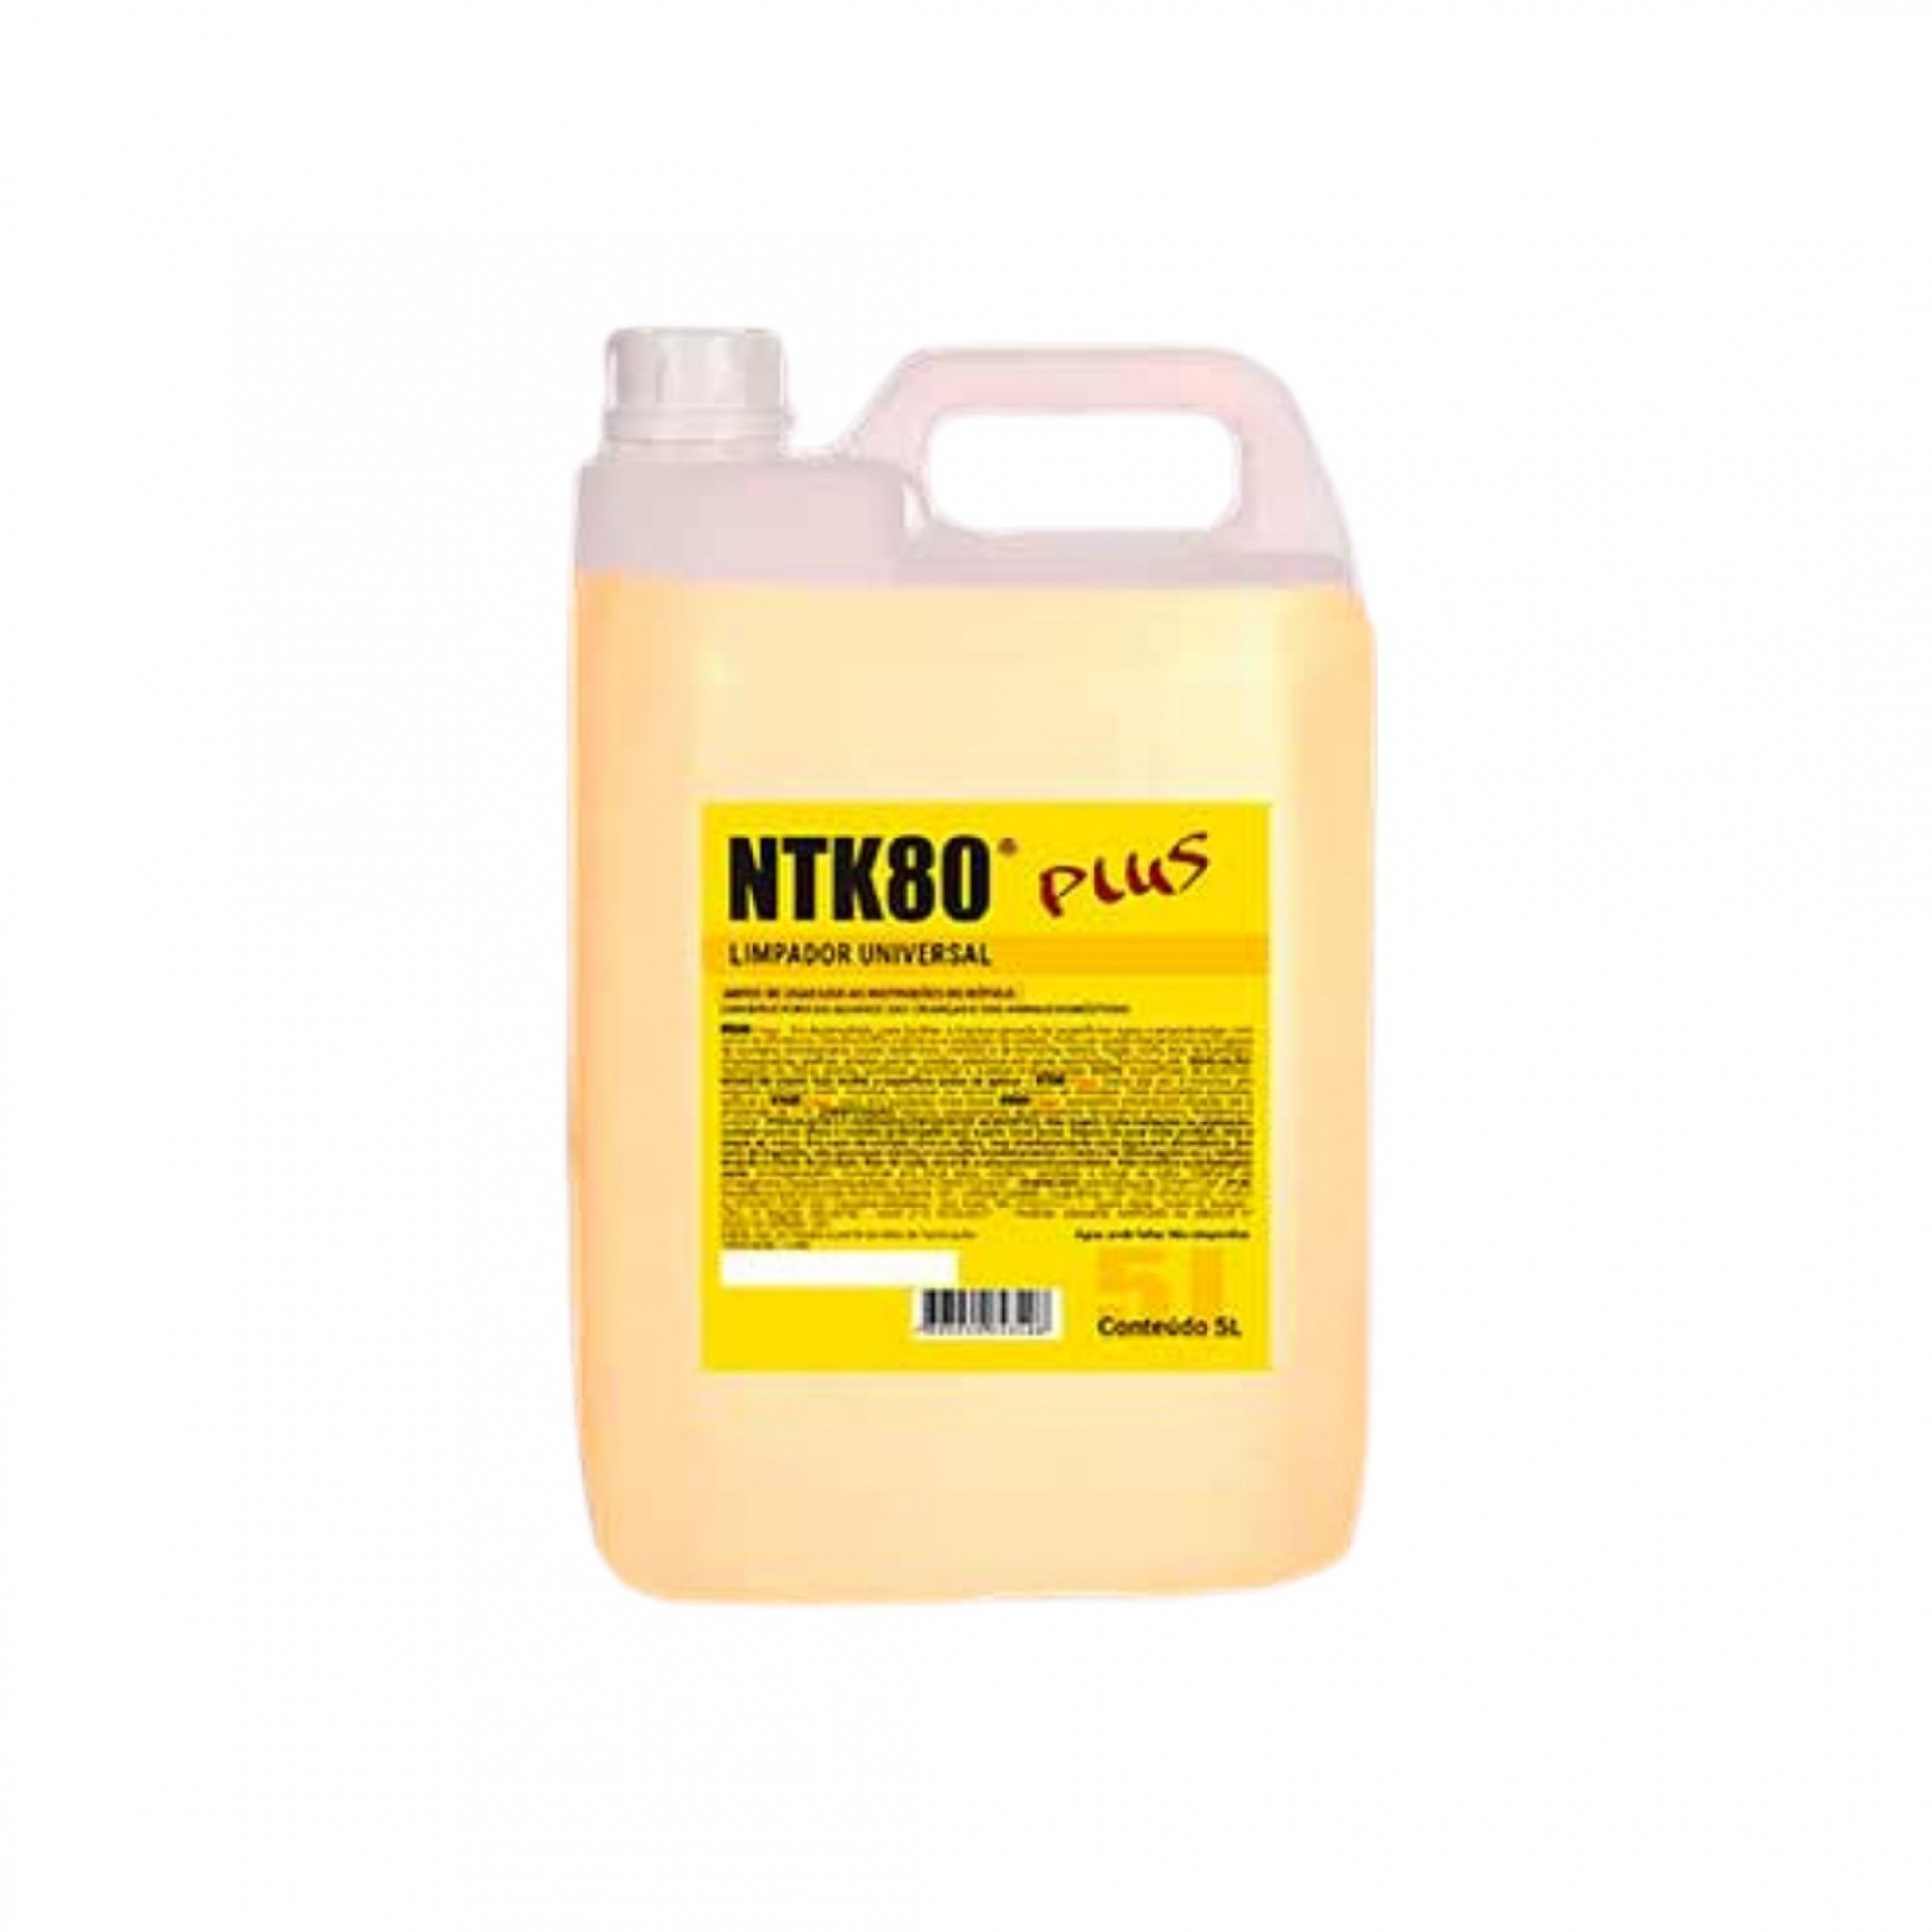 Limpador Universal NTK80 Plus 5 Litros Spray